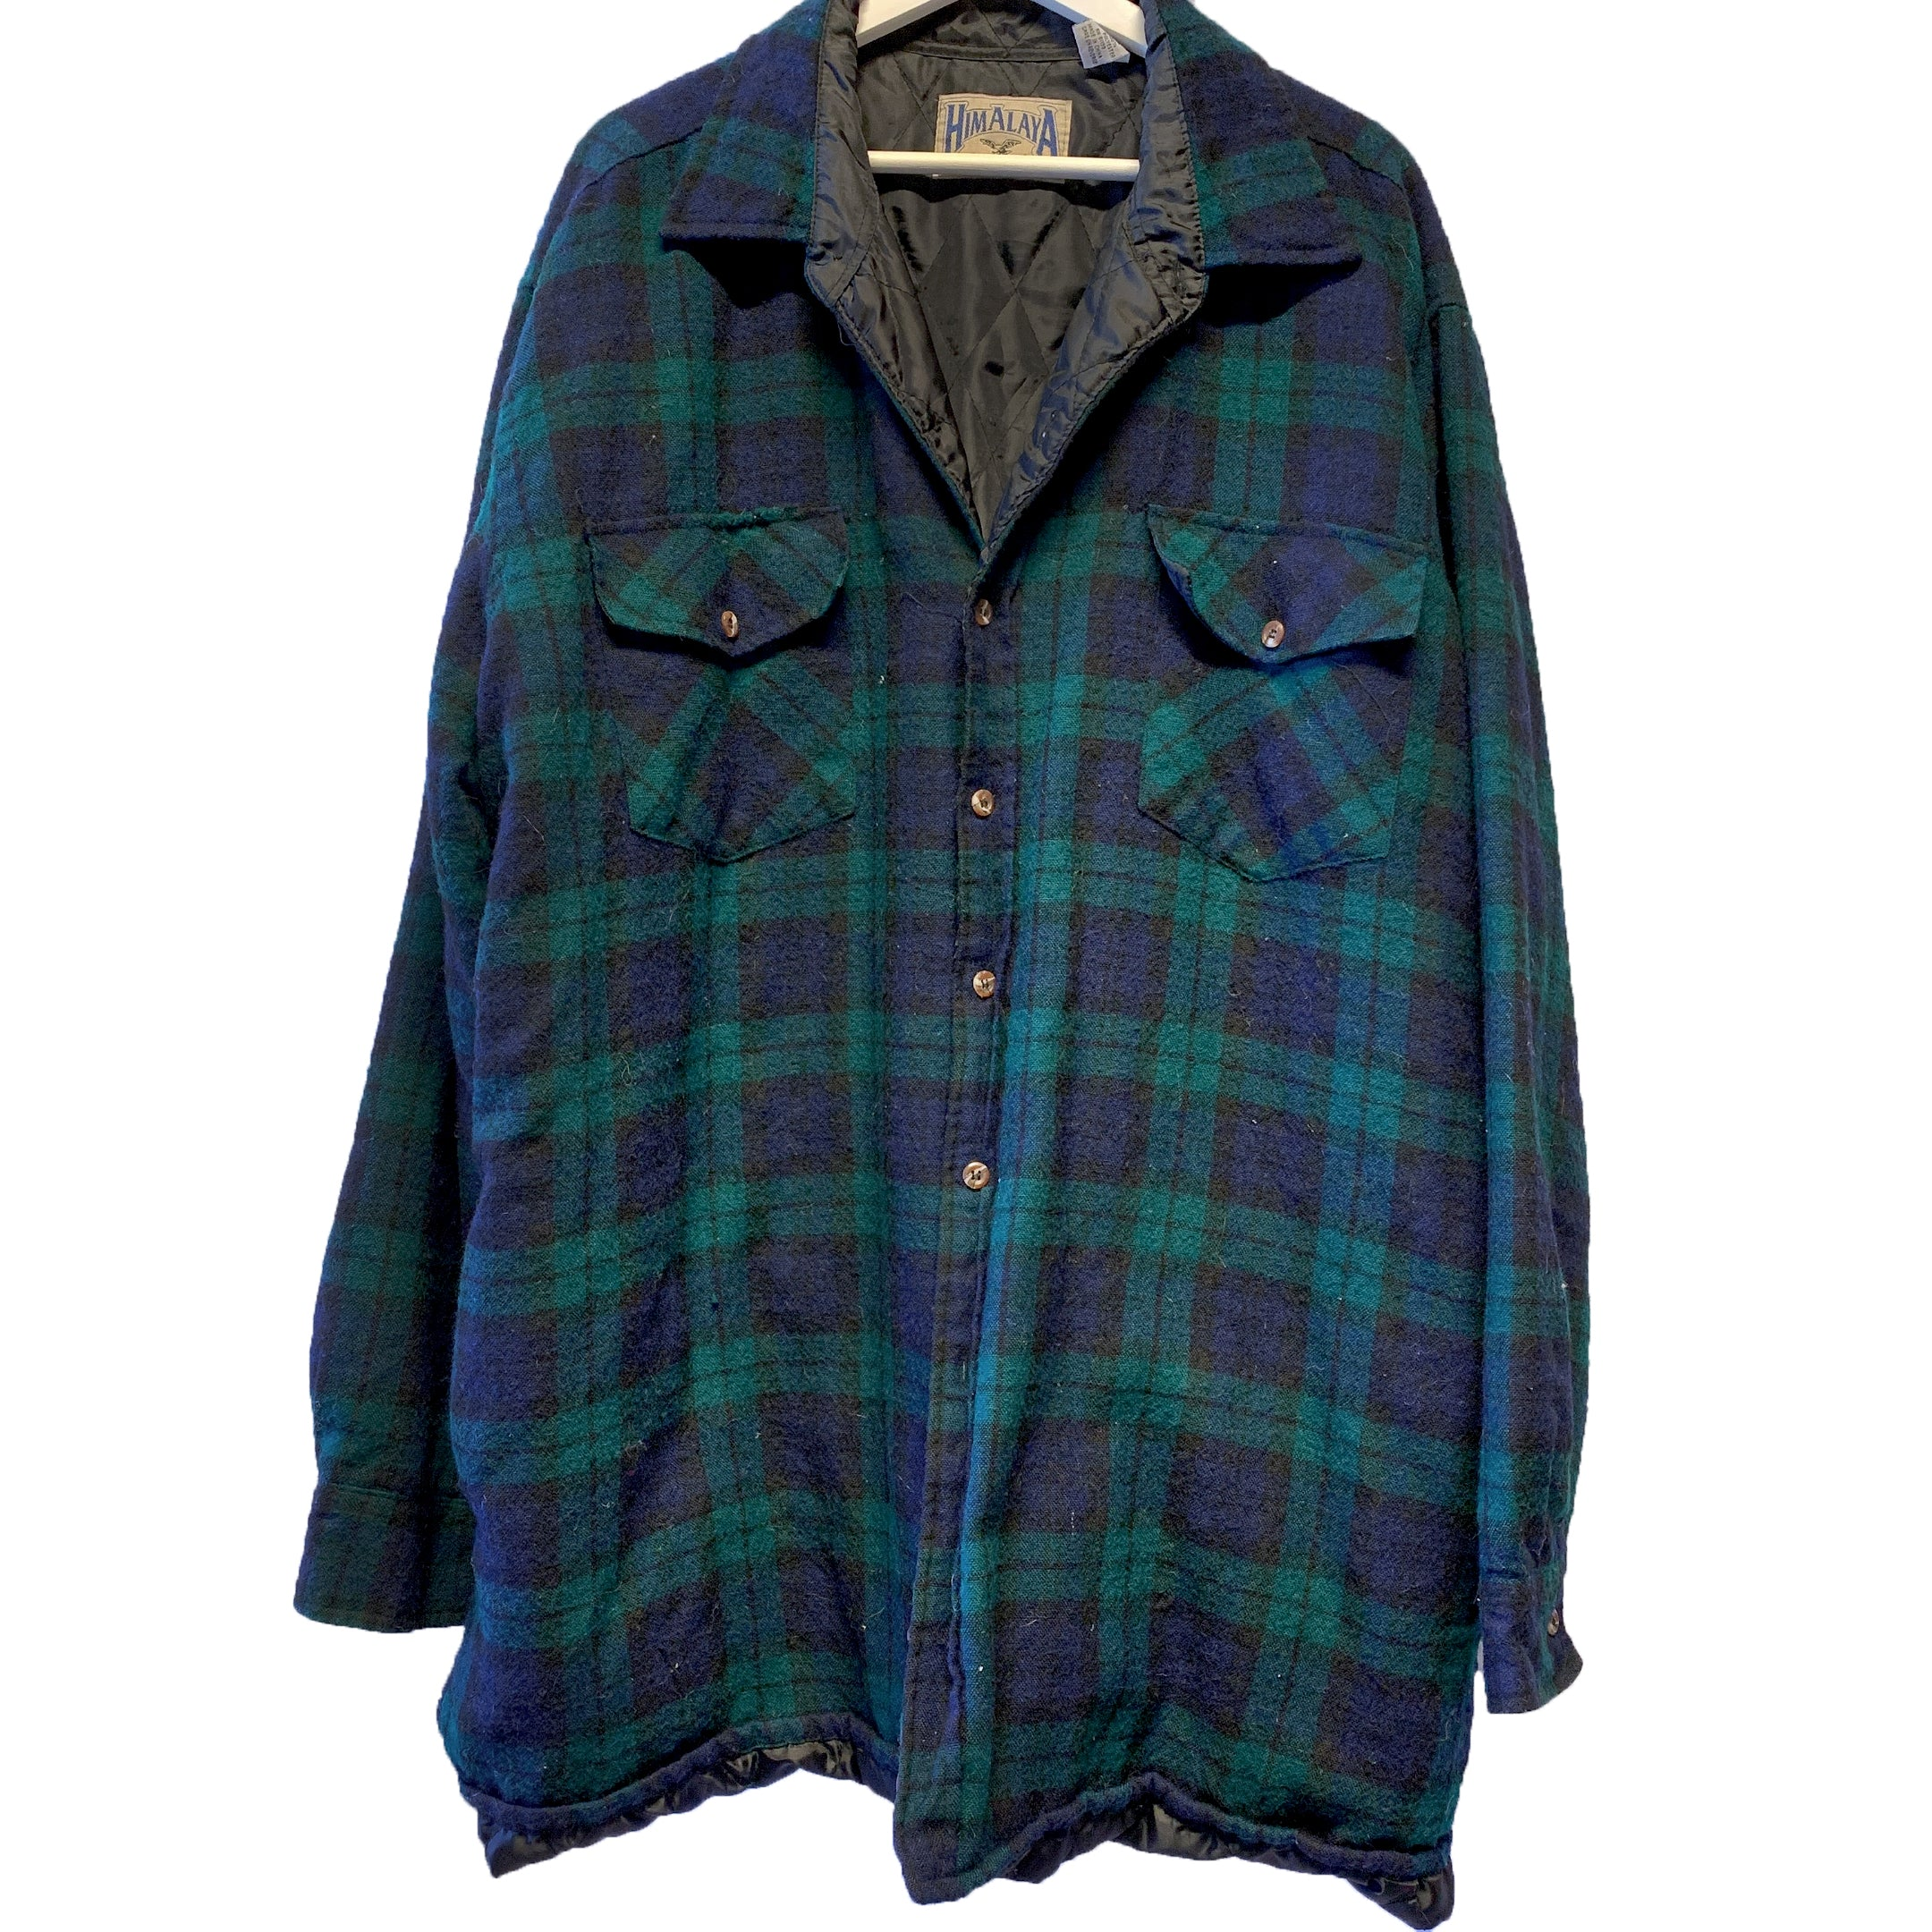 Another siick flannel